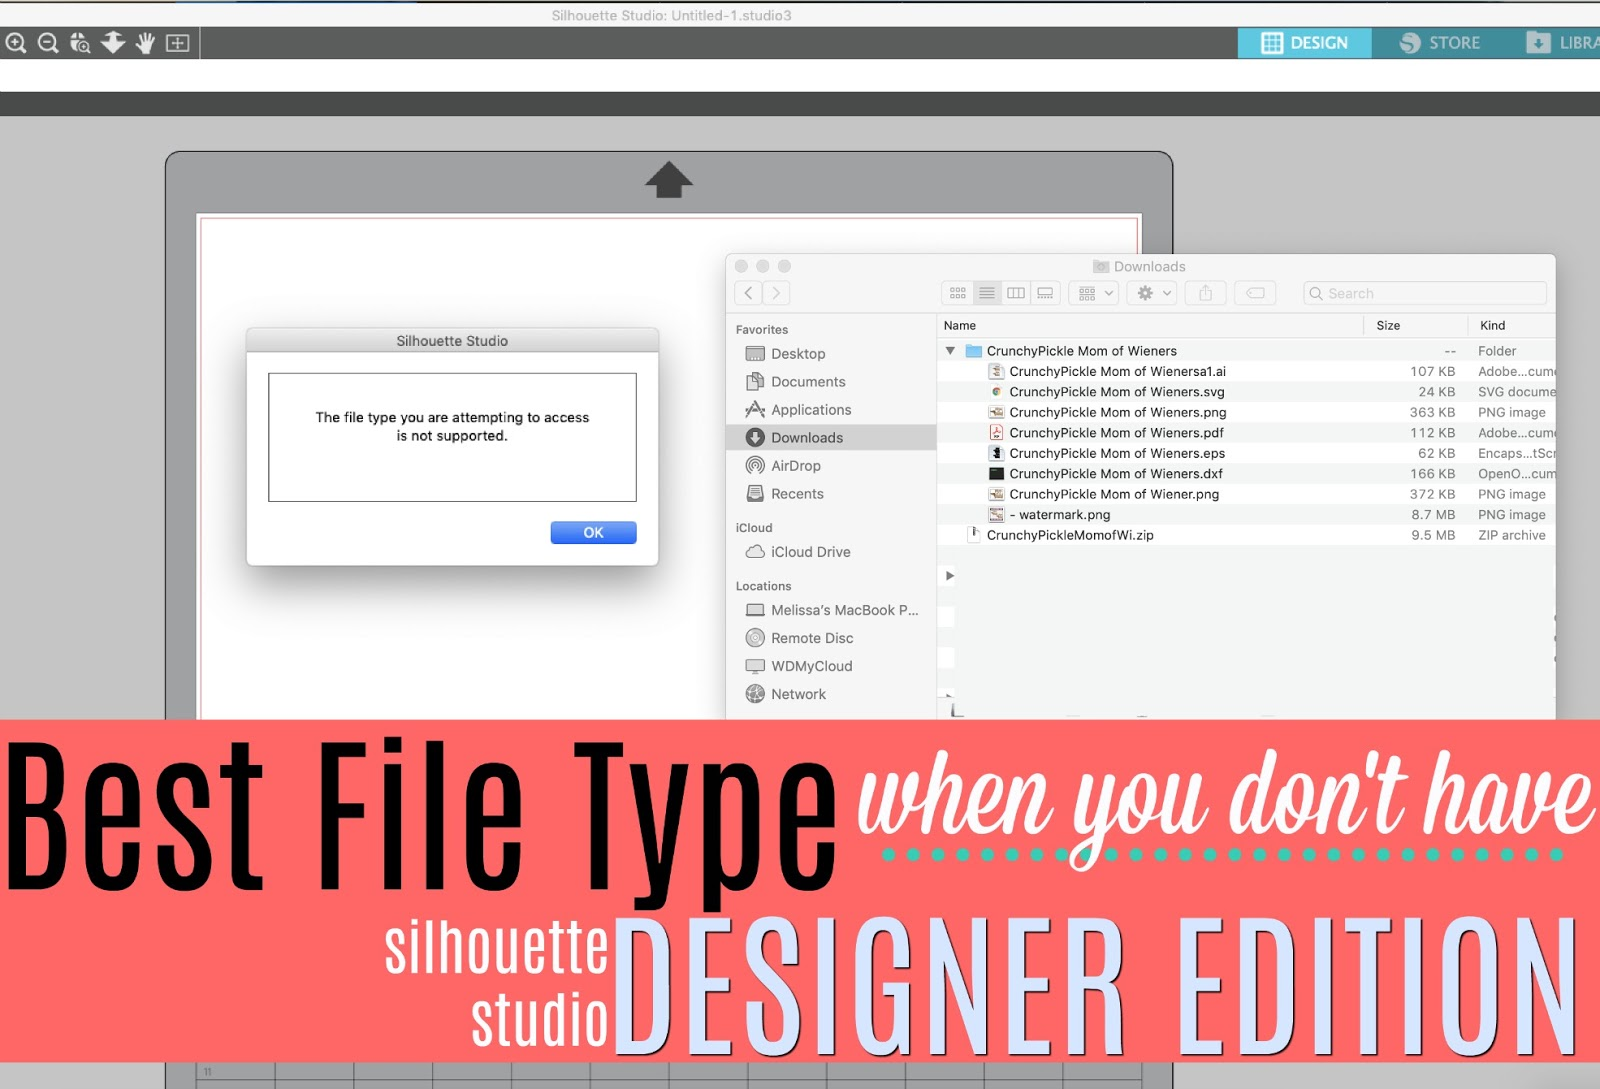 Best File Type For Silhouette When You Don T Have Designer Edition Silhouette School